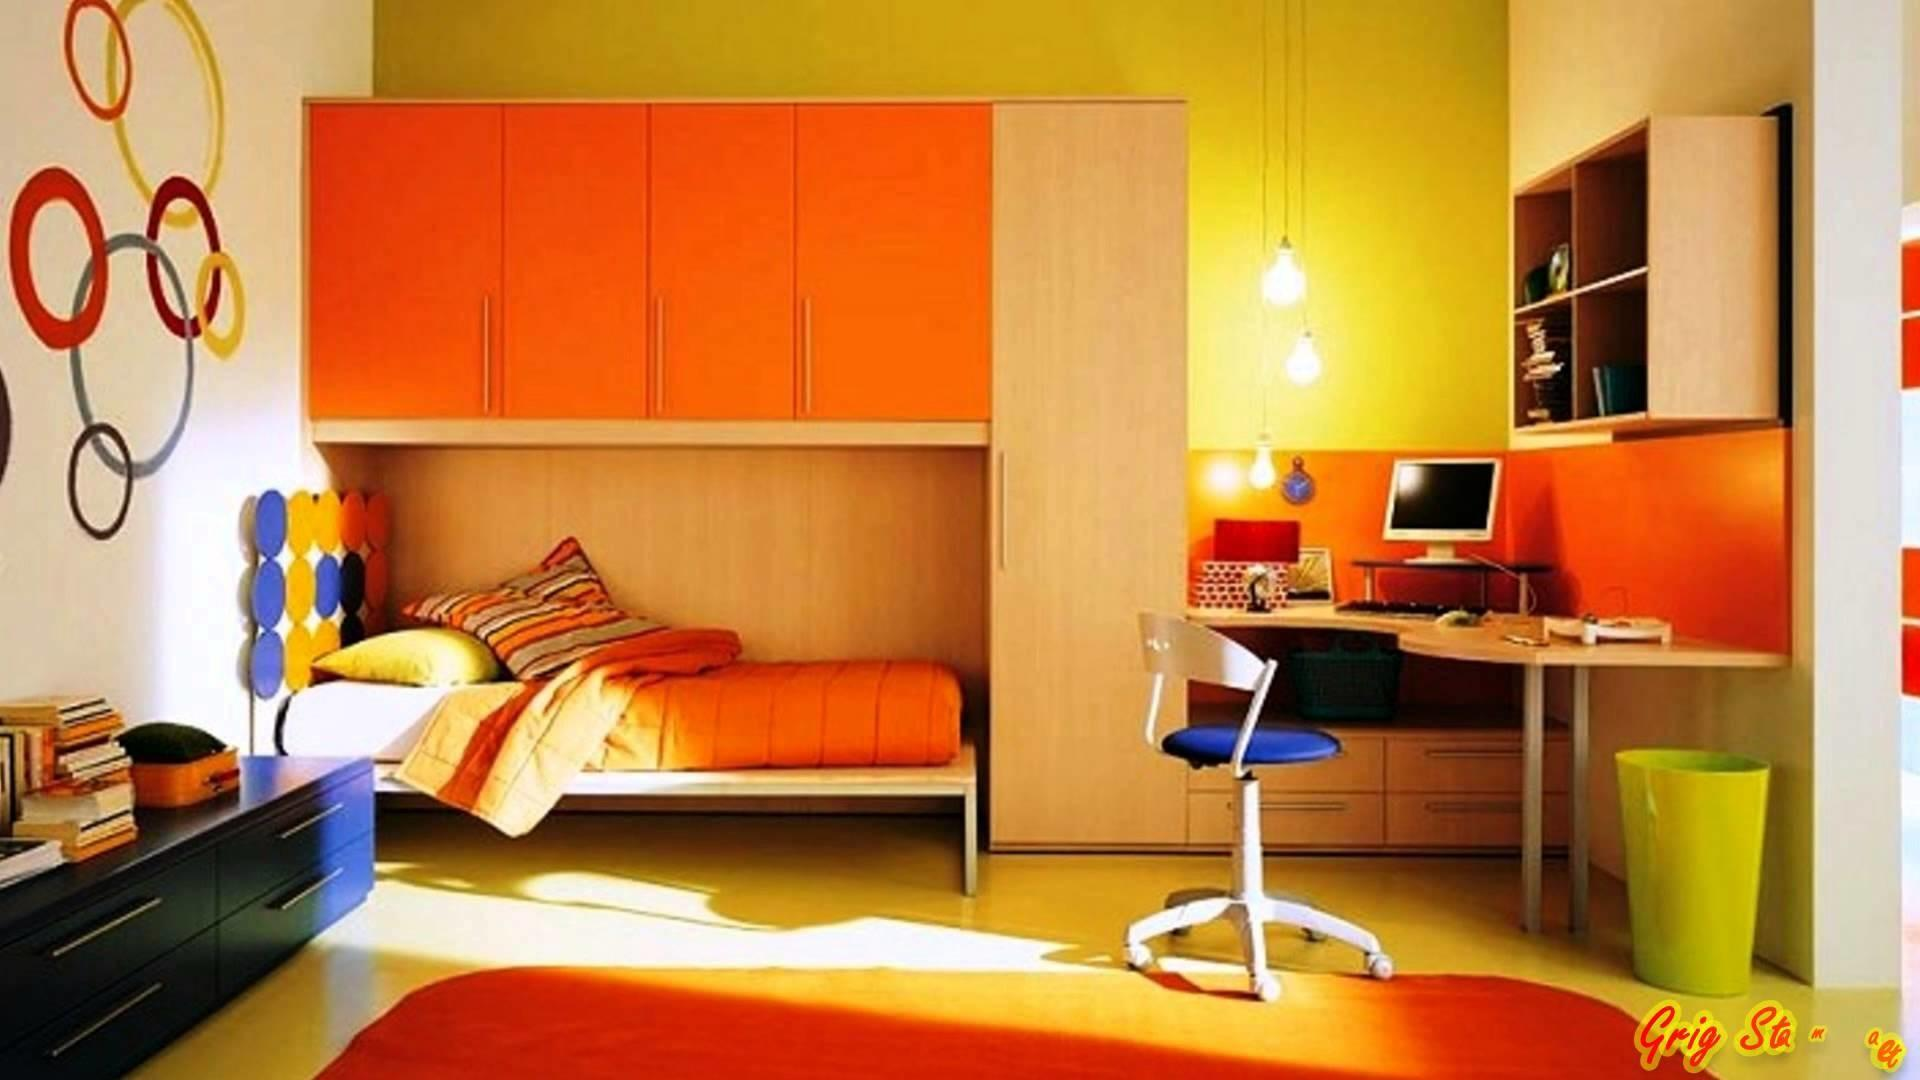 Bright Home Design Ideas Yellow Orange Mp3